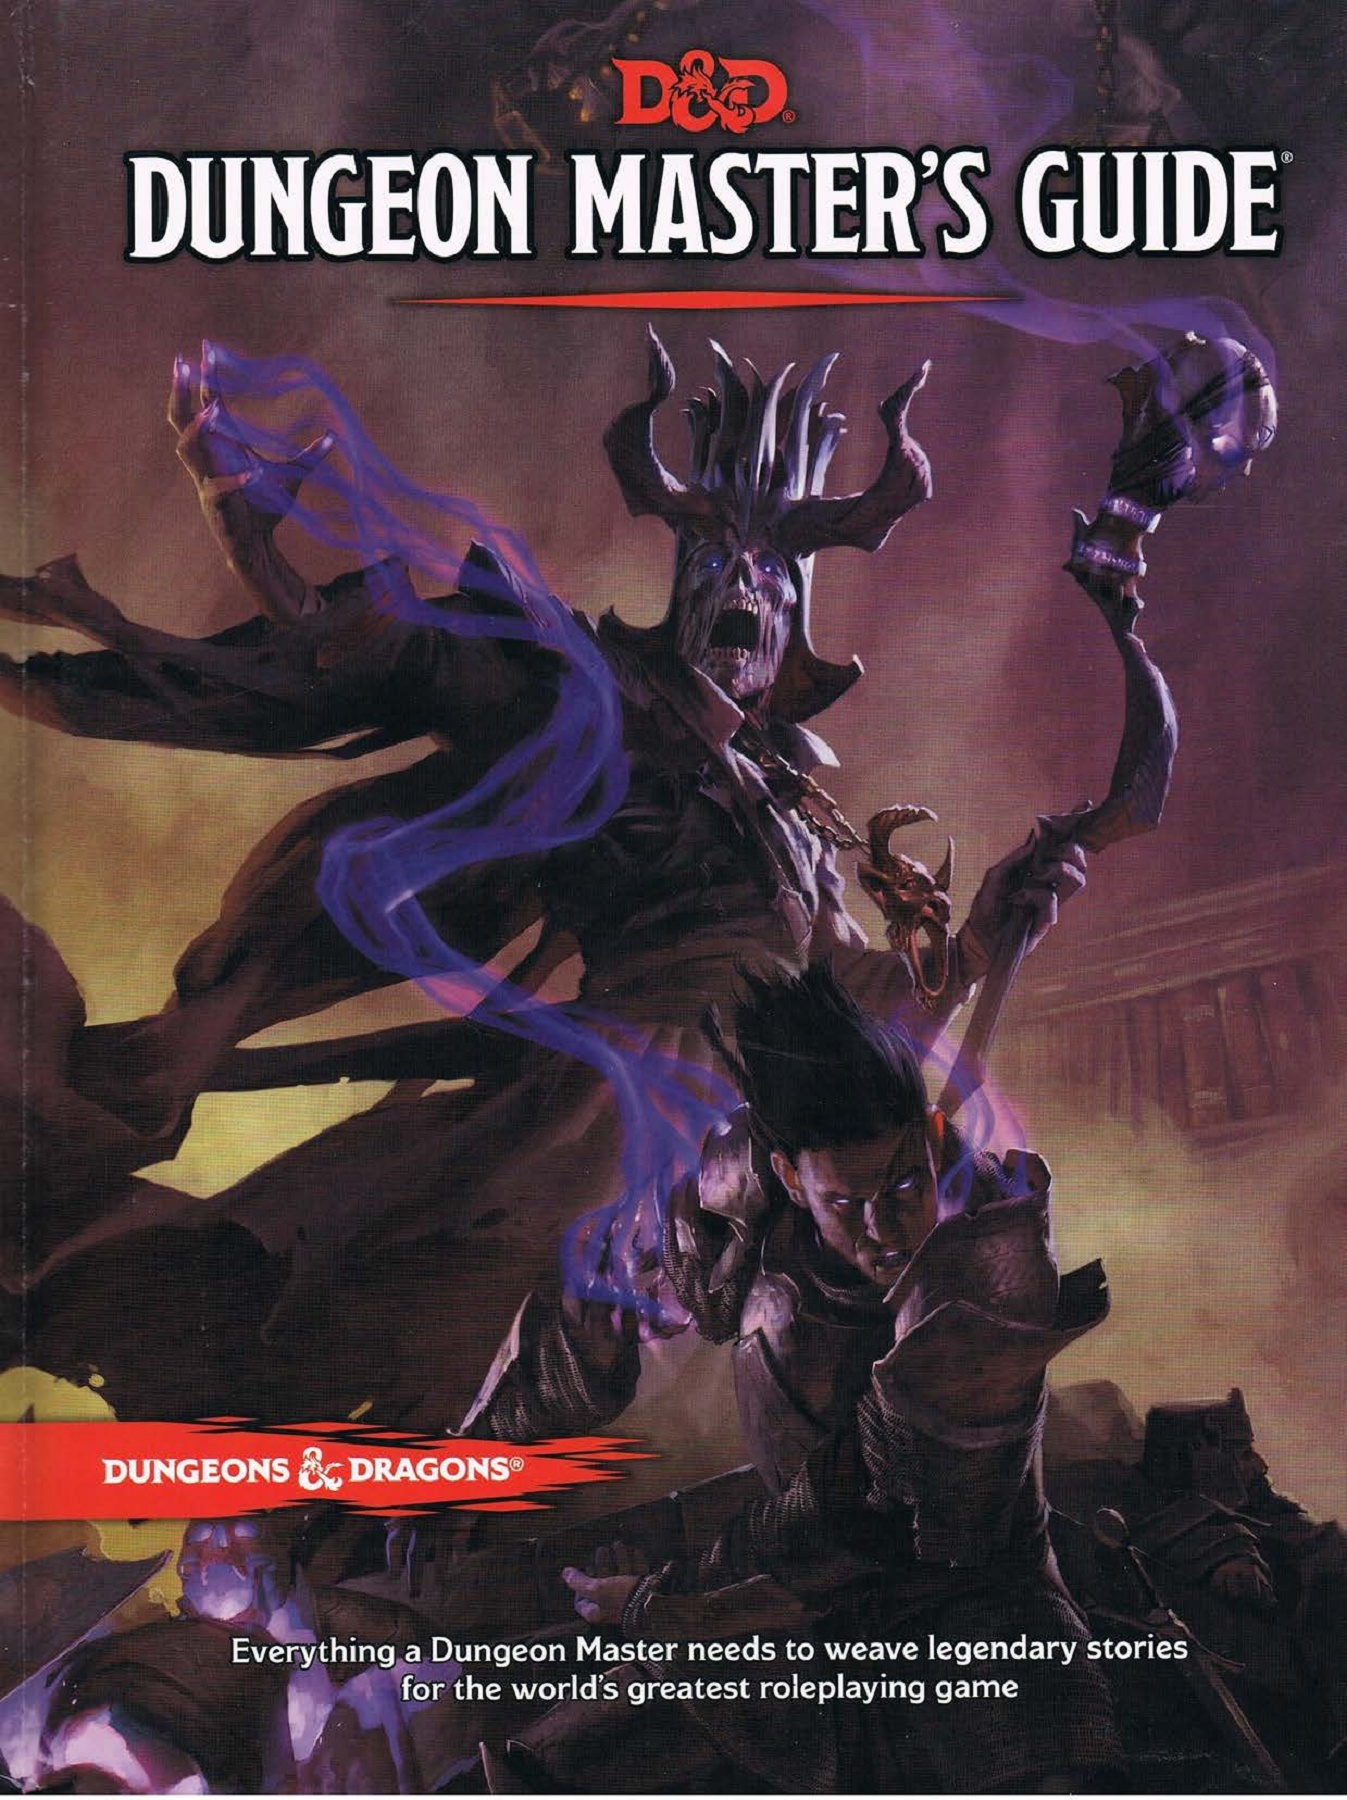 DnD 5e Dungeon Masters Guide Pages 1 - 50 - Text Version | AnyFlip